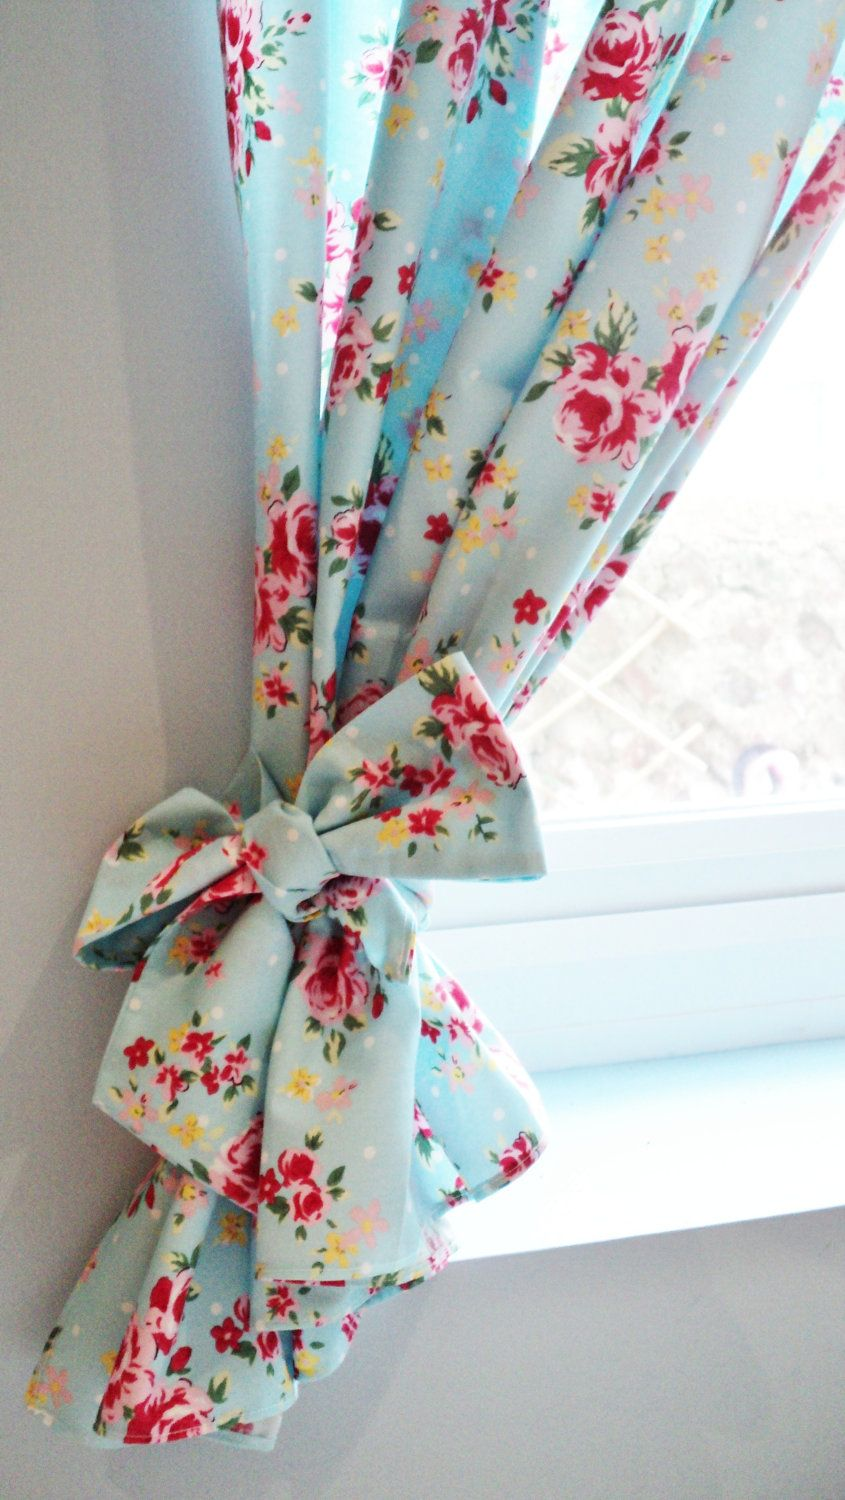 Shabby chic curtains blue - Shabby Chic Blue Rose Floral Curtain Kitsch Retro Vintage Made To Order Curtains 55 00